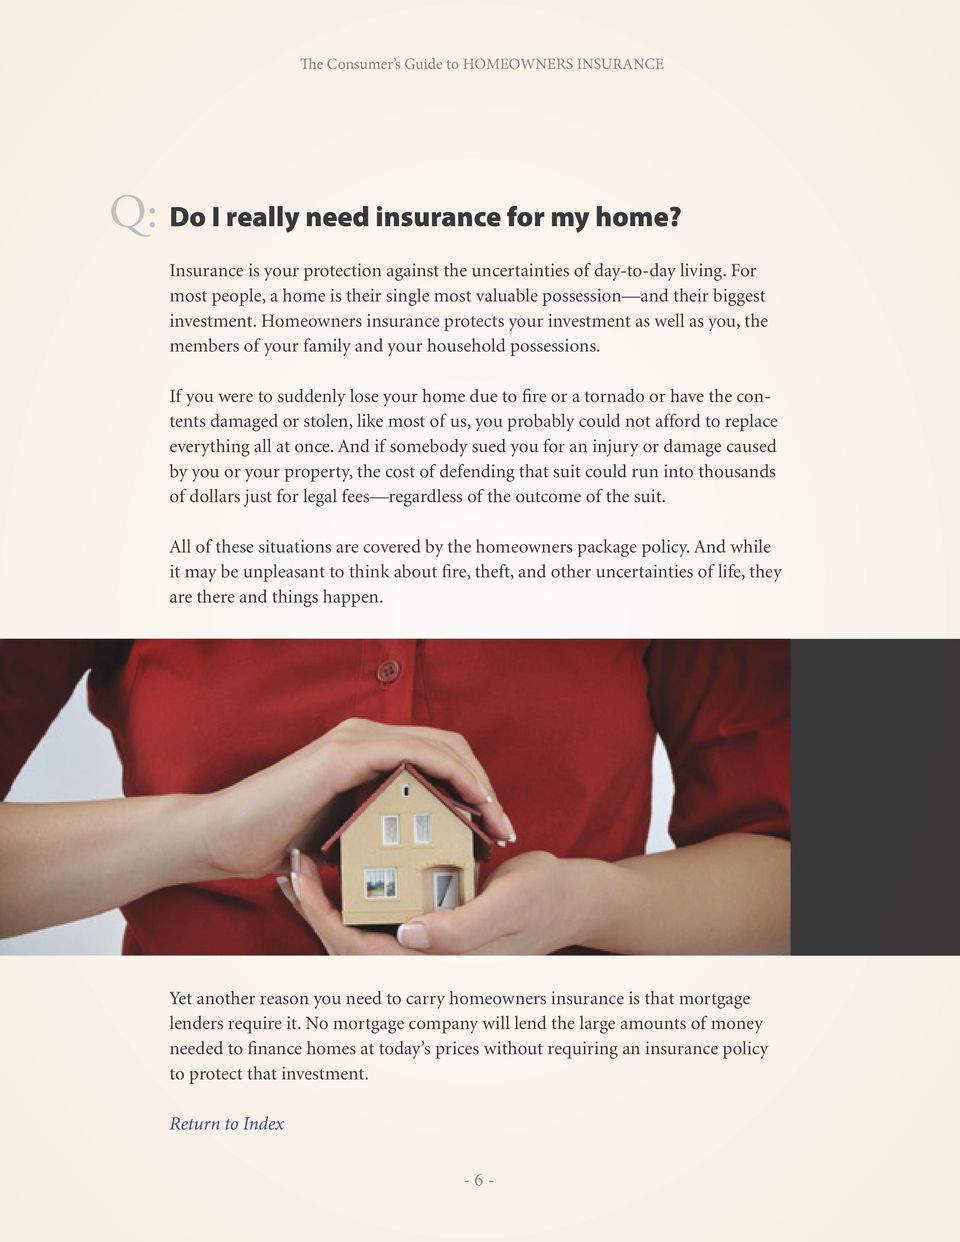 Homeowners insurance protects your investment as well as you, the members of your family and your household possessions.